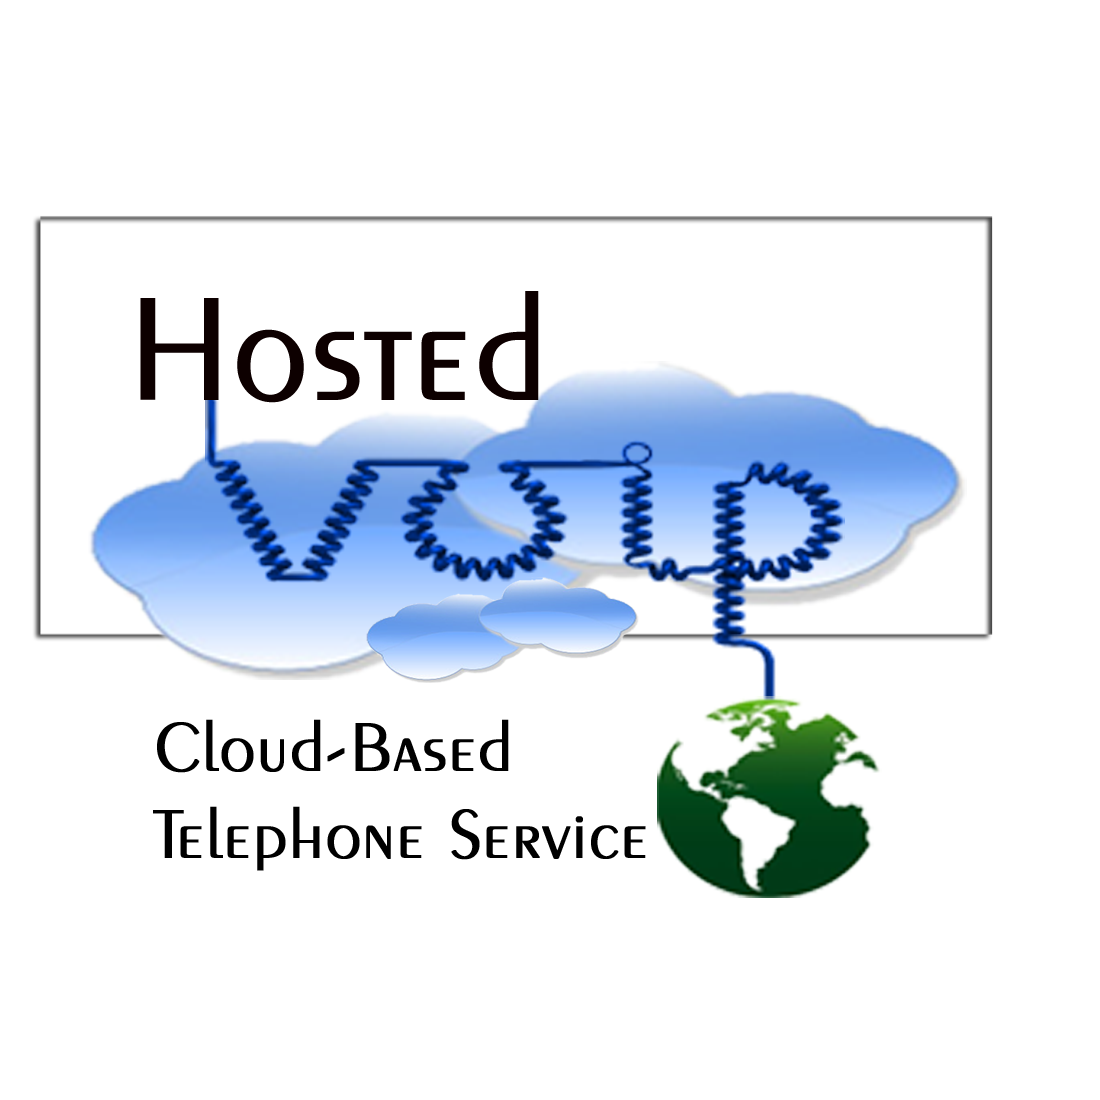 Best picture of general communications woburn ma - For Anyone Looking For Quality Voip Service With Exceptional Call Clarity And Unlimited Free Calling To Another Ooma To Ooma System Then A Good Investment